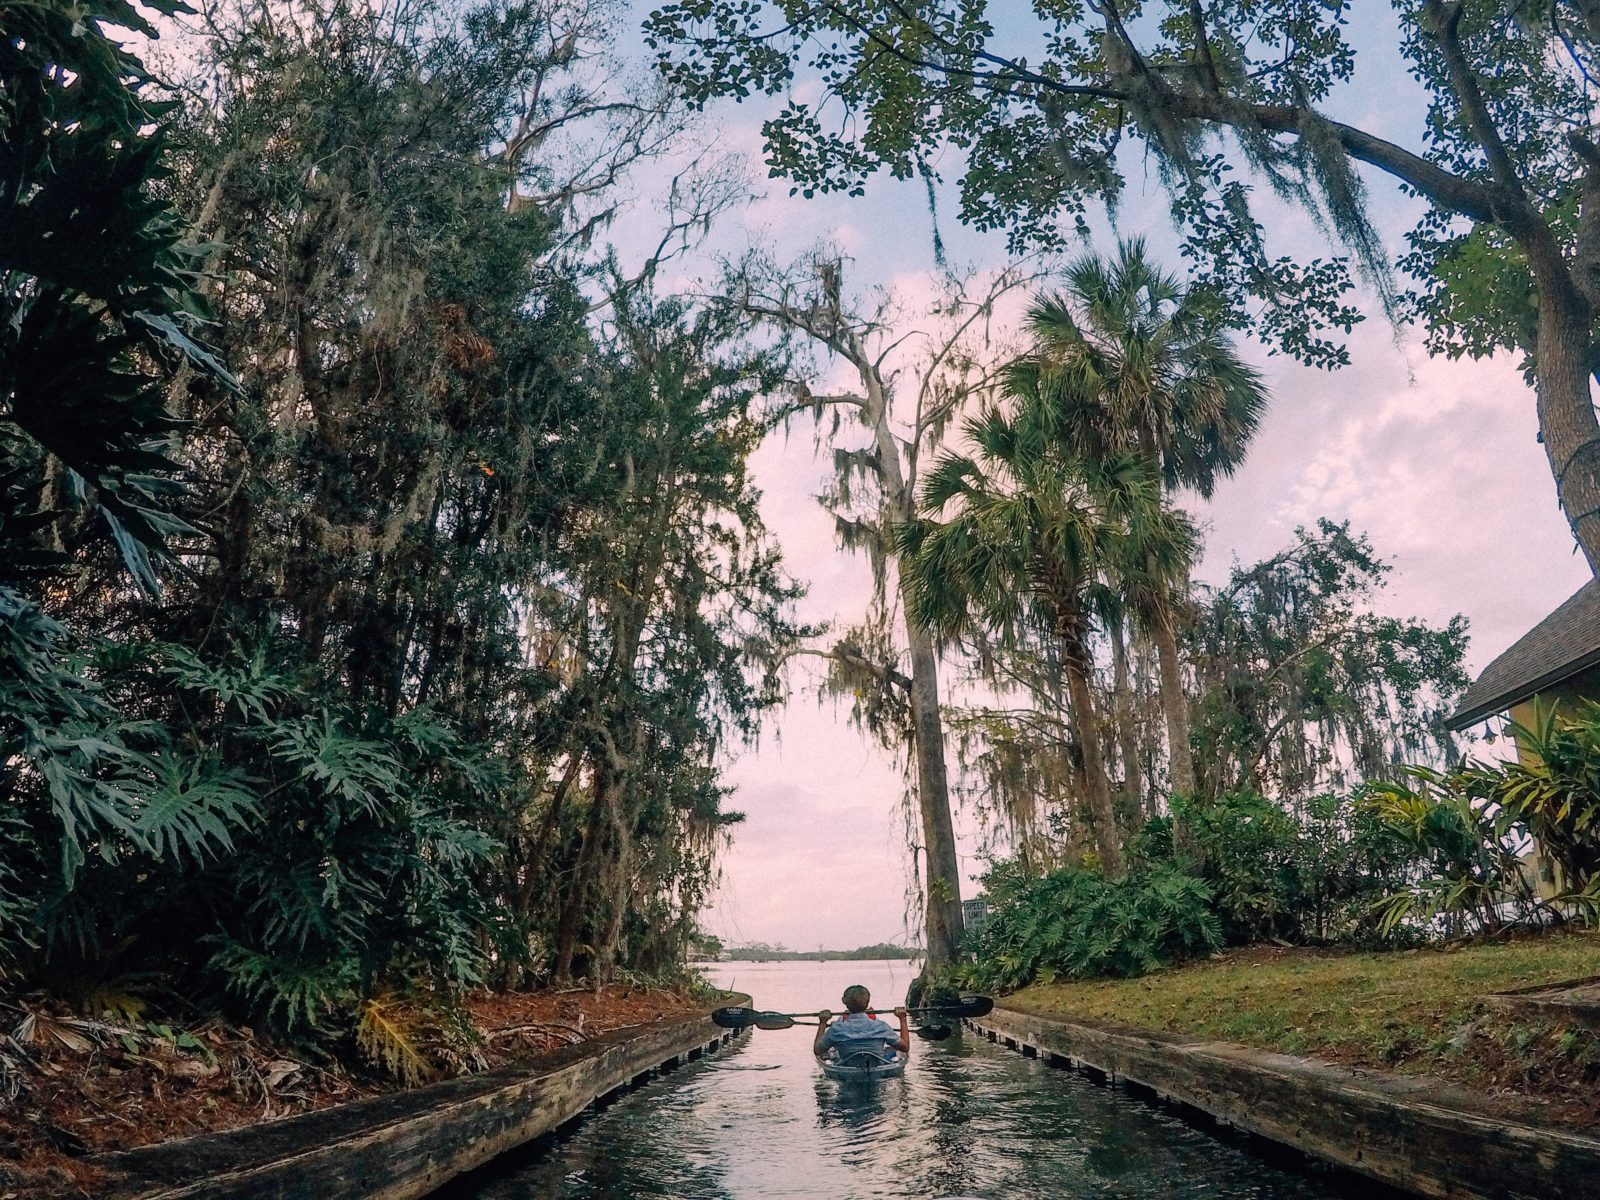 Exploring Winter Park, Florida's canals